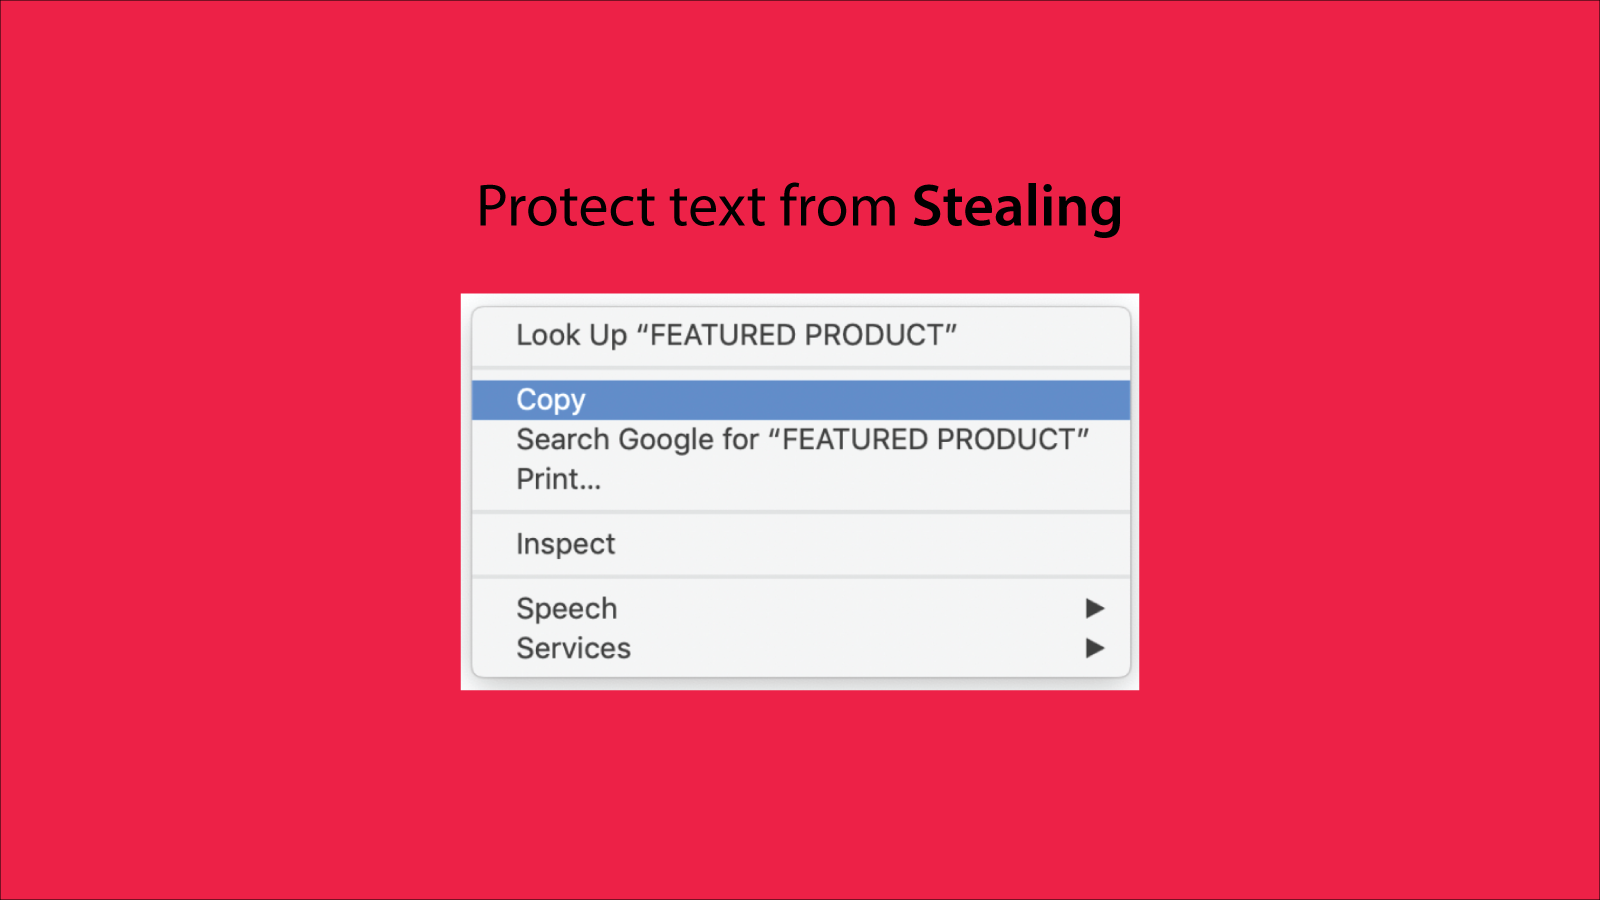 Protection from Stealing